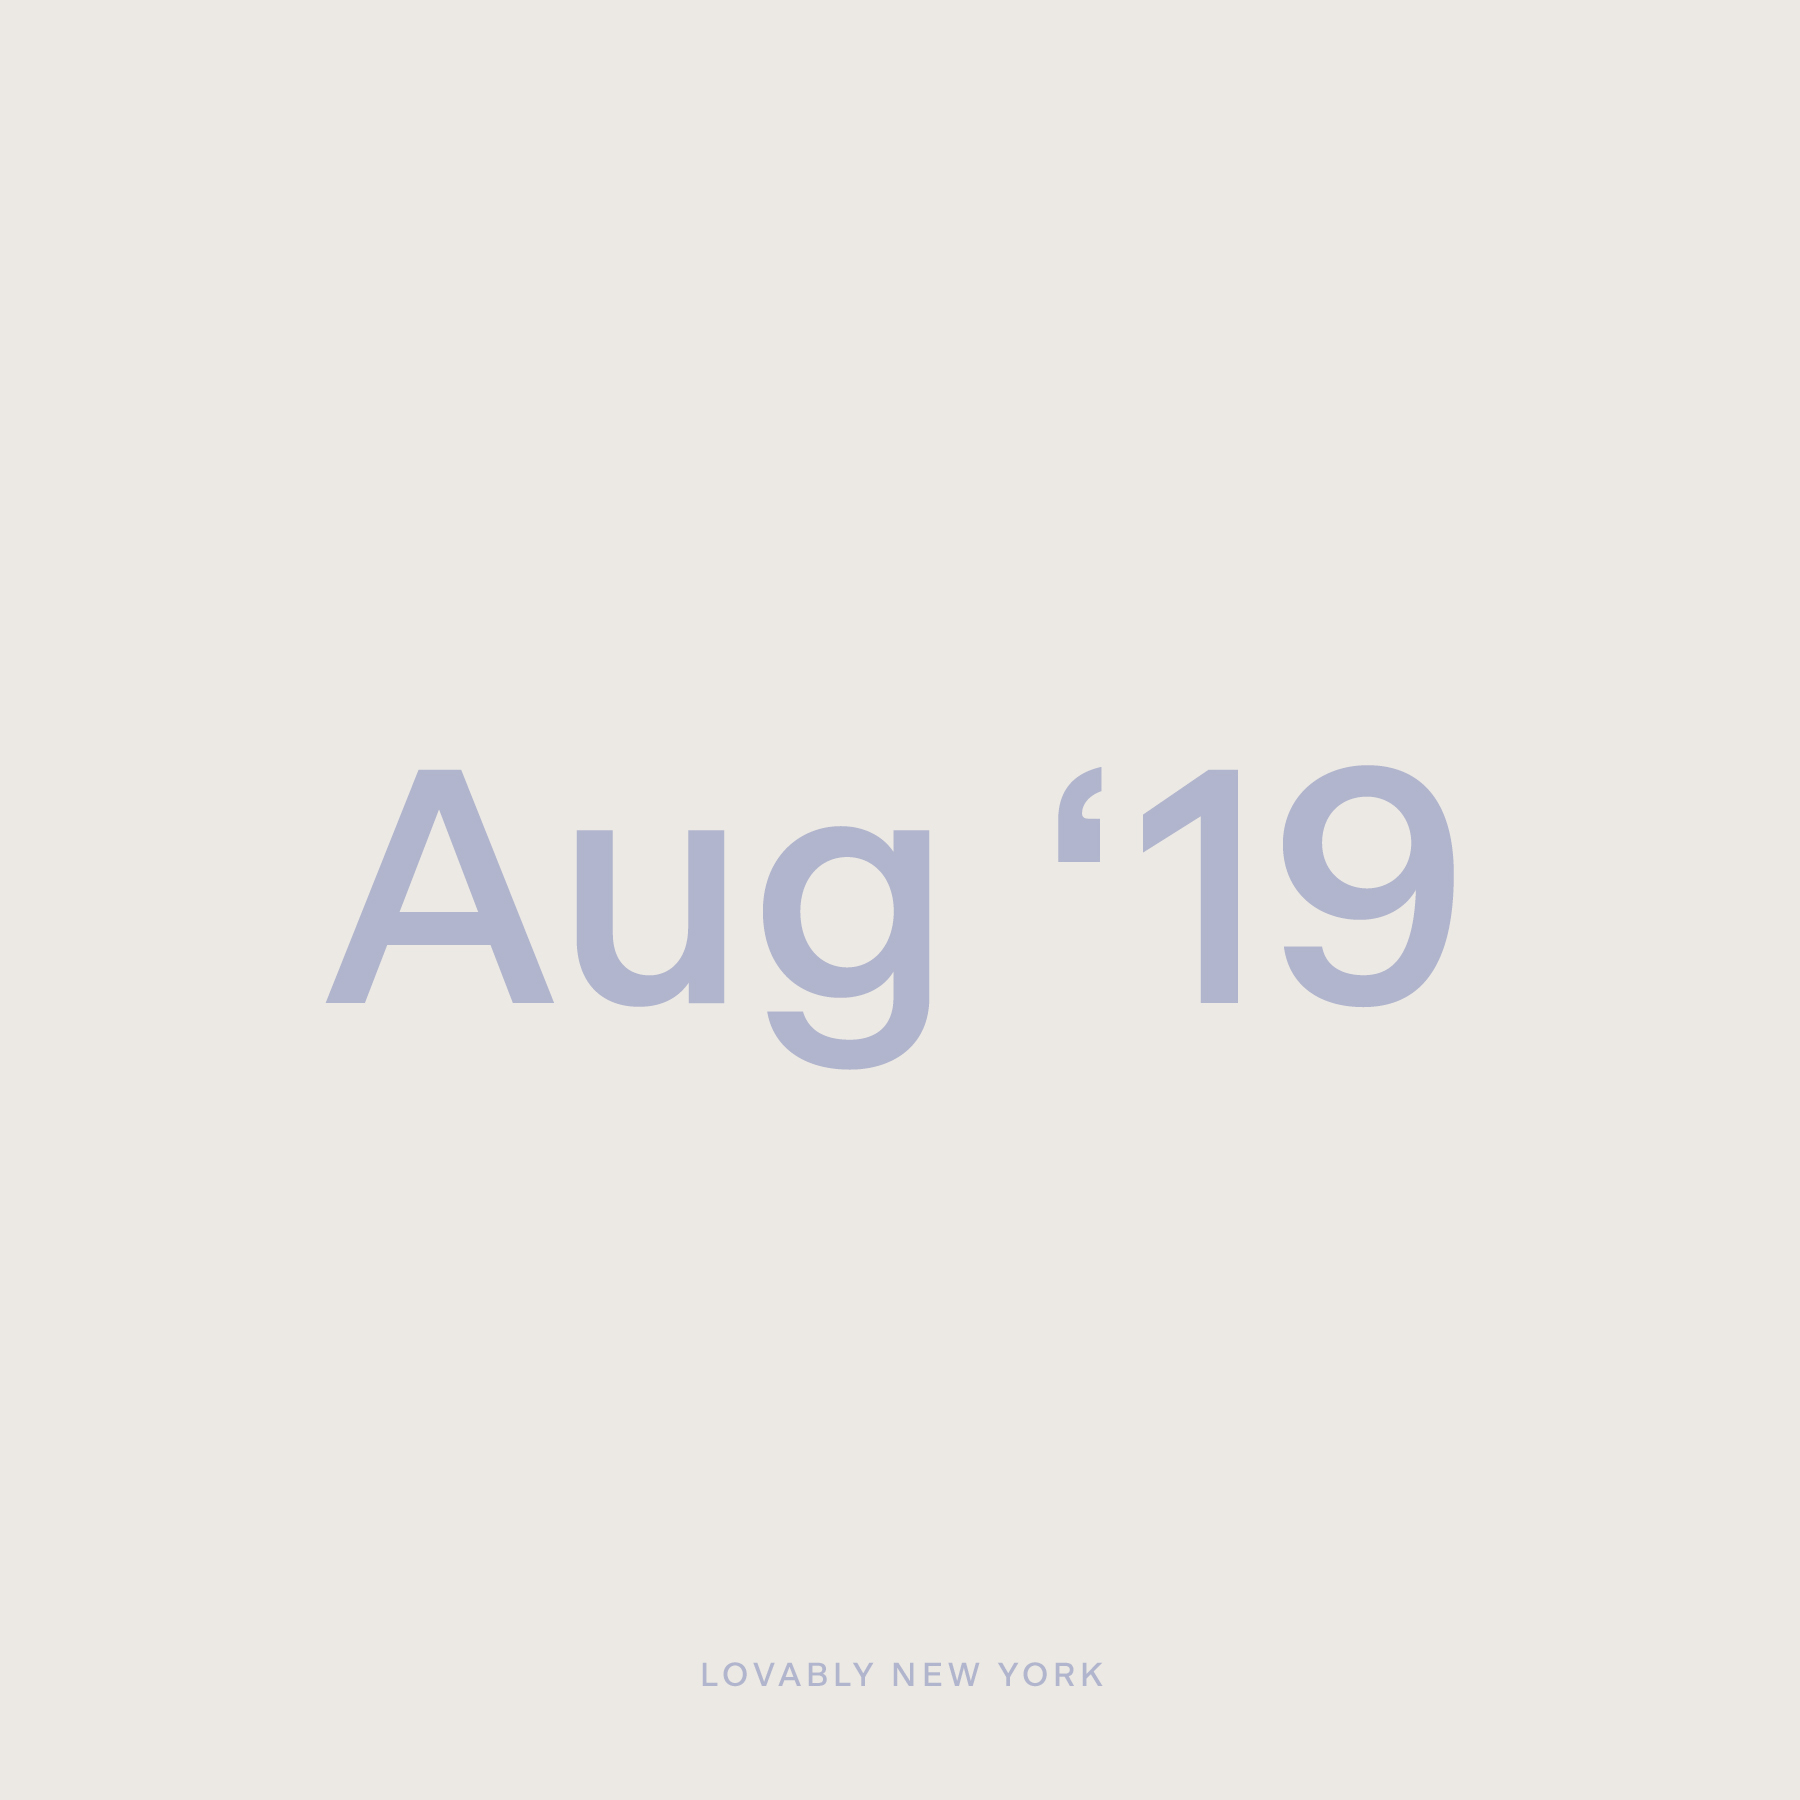 August '19